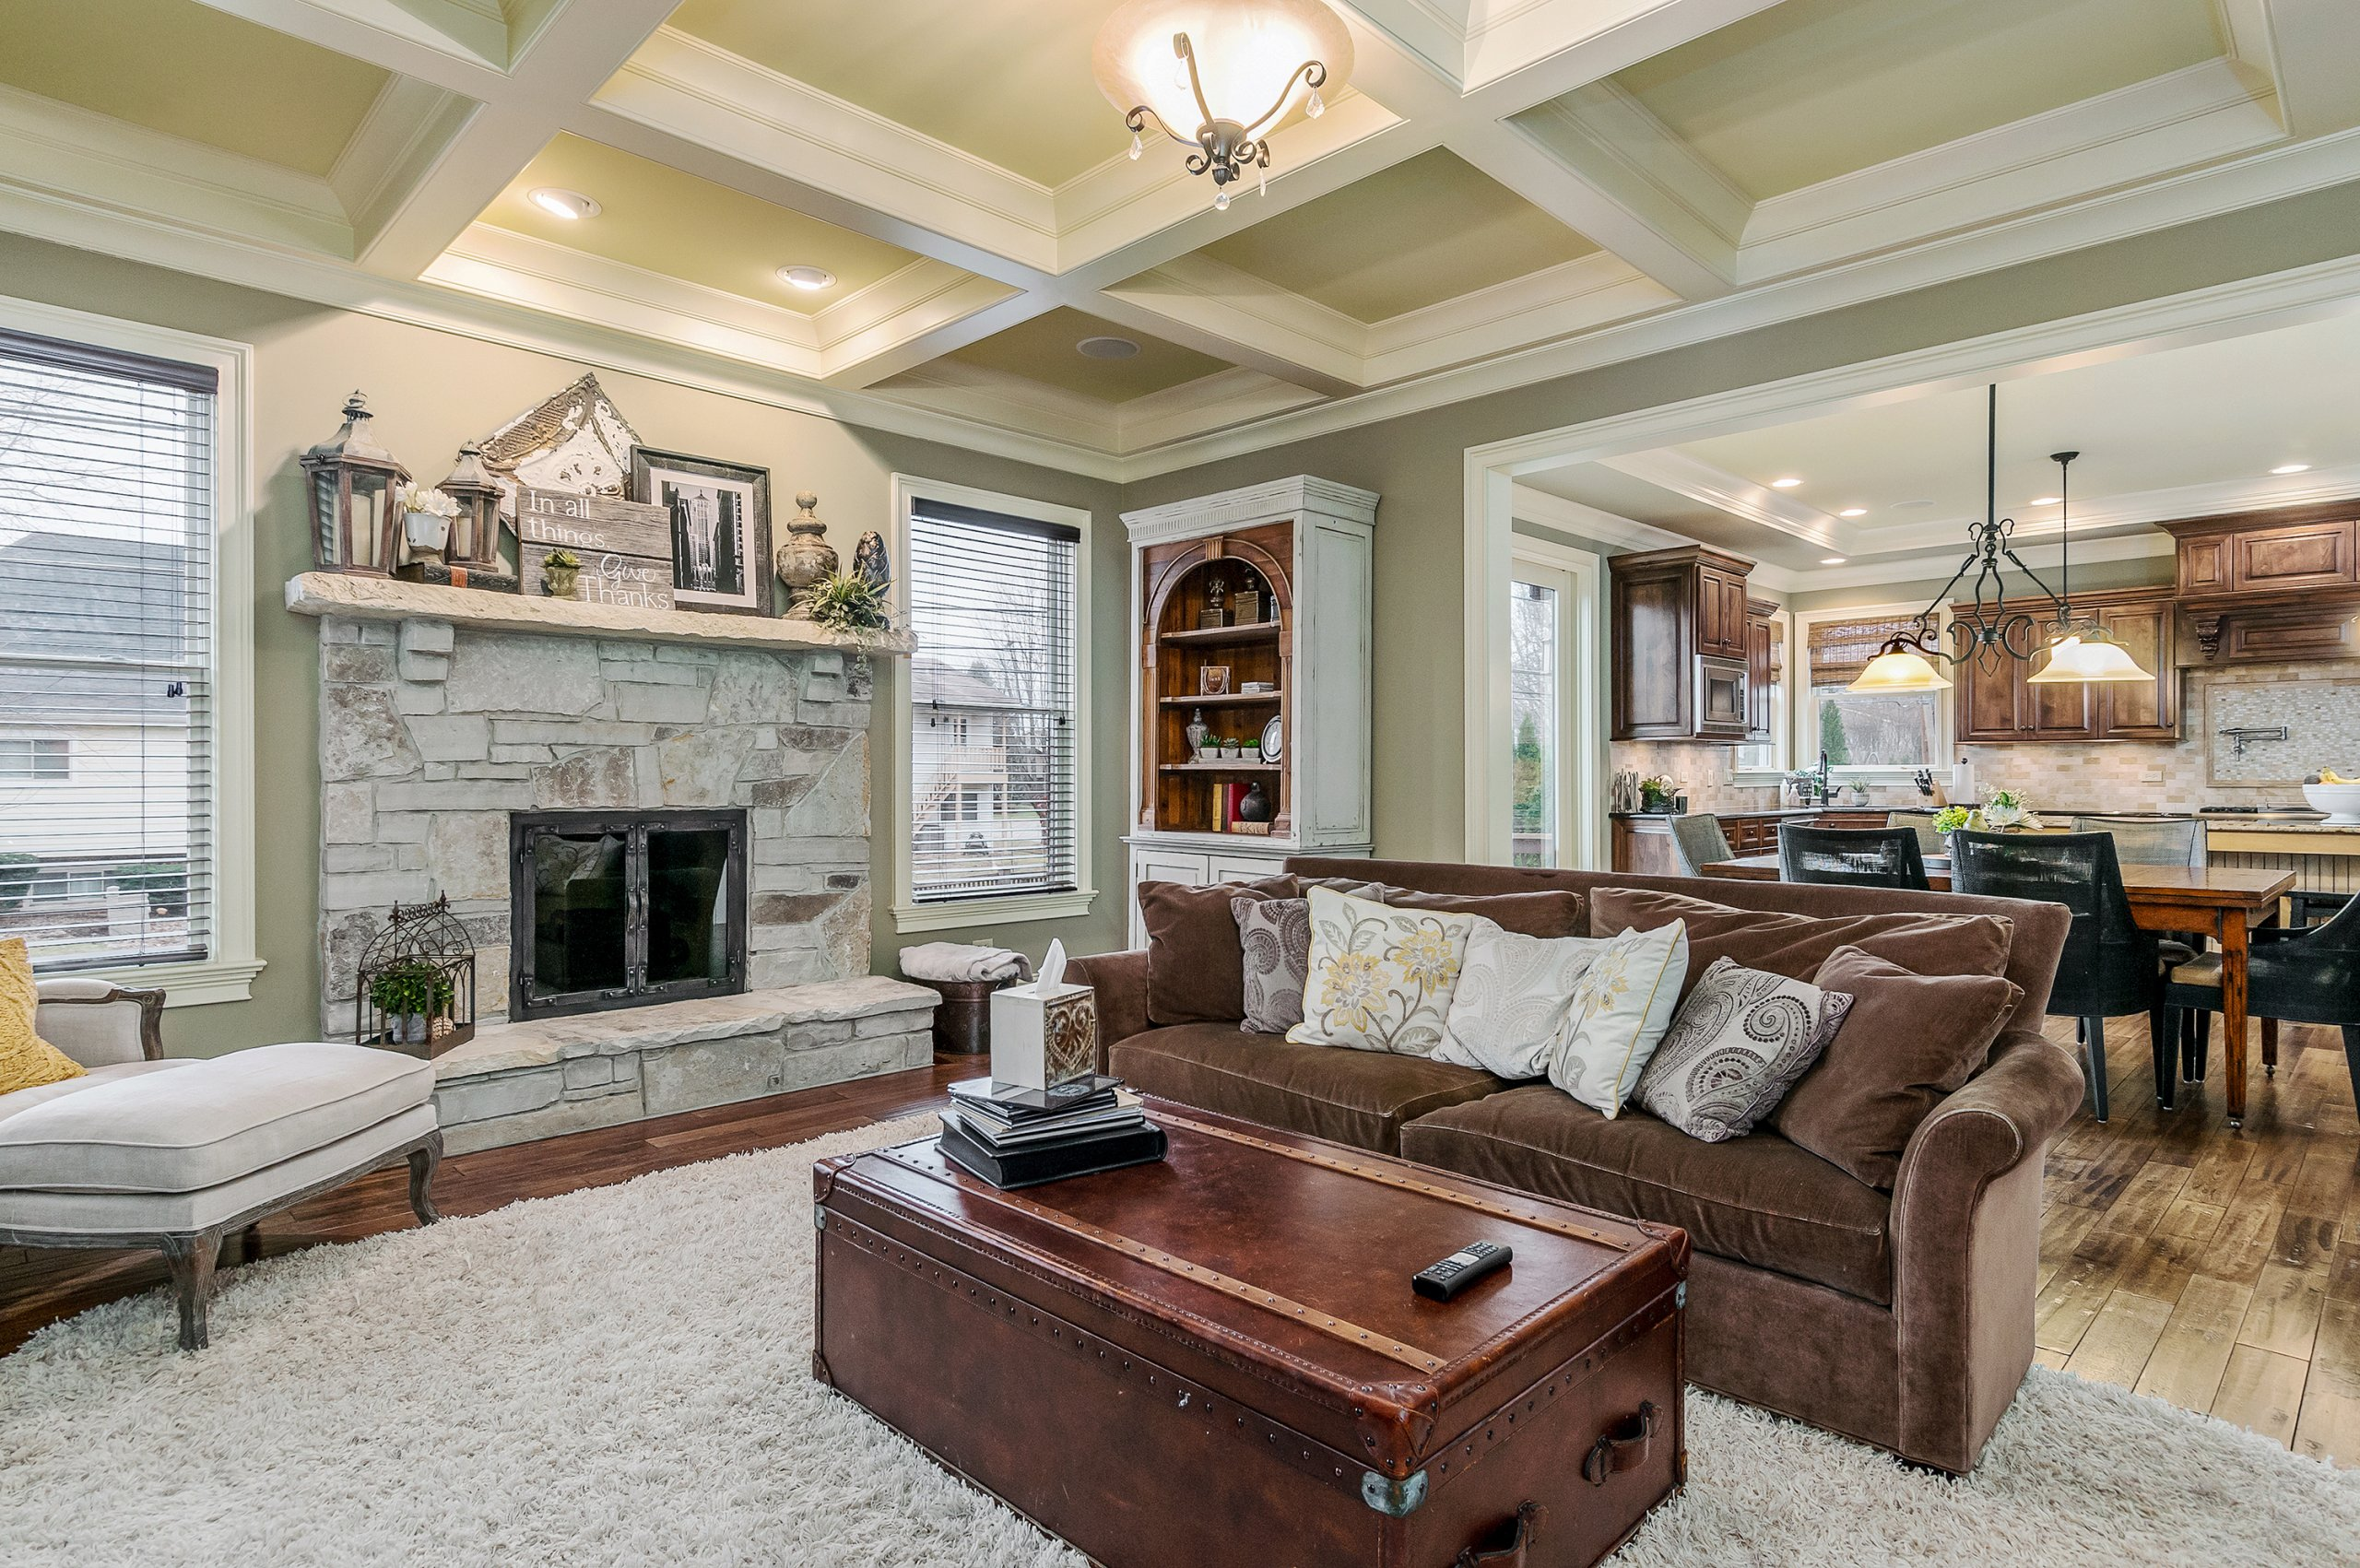 An upscale Naperville, Illinois living room